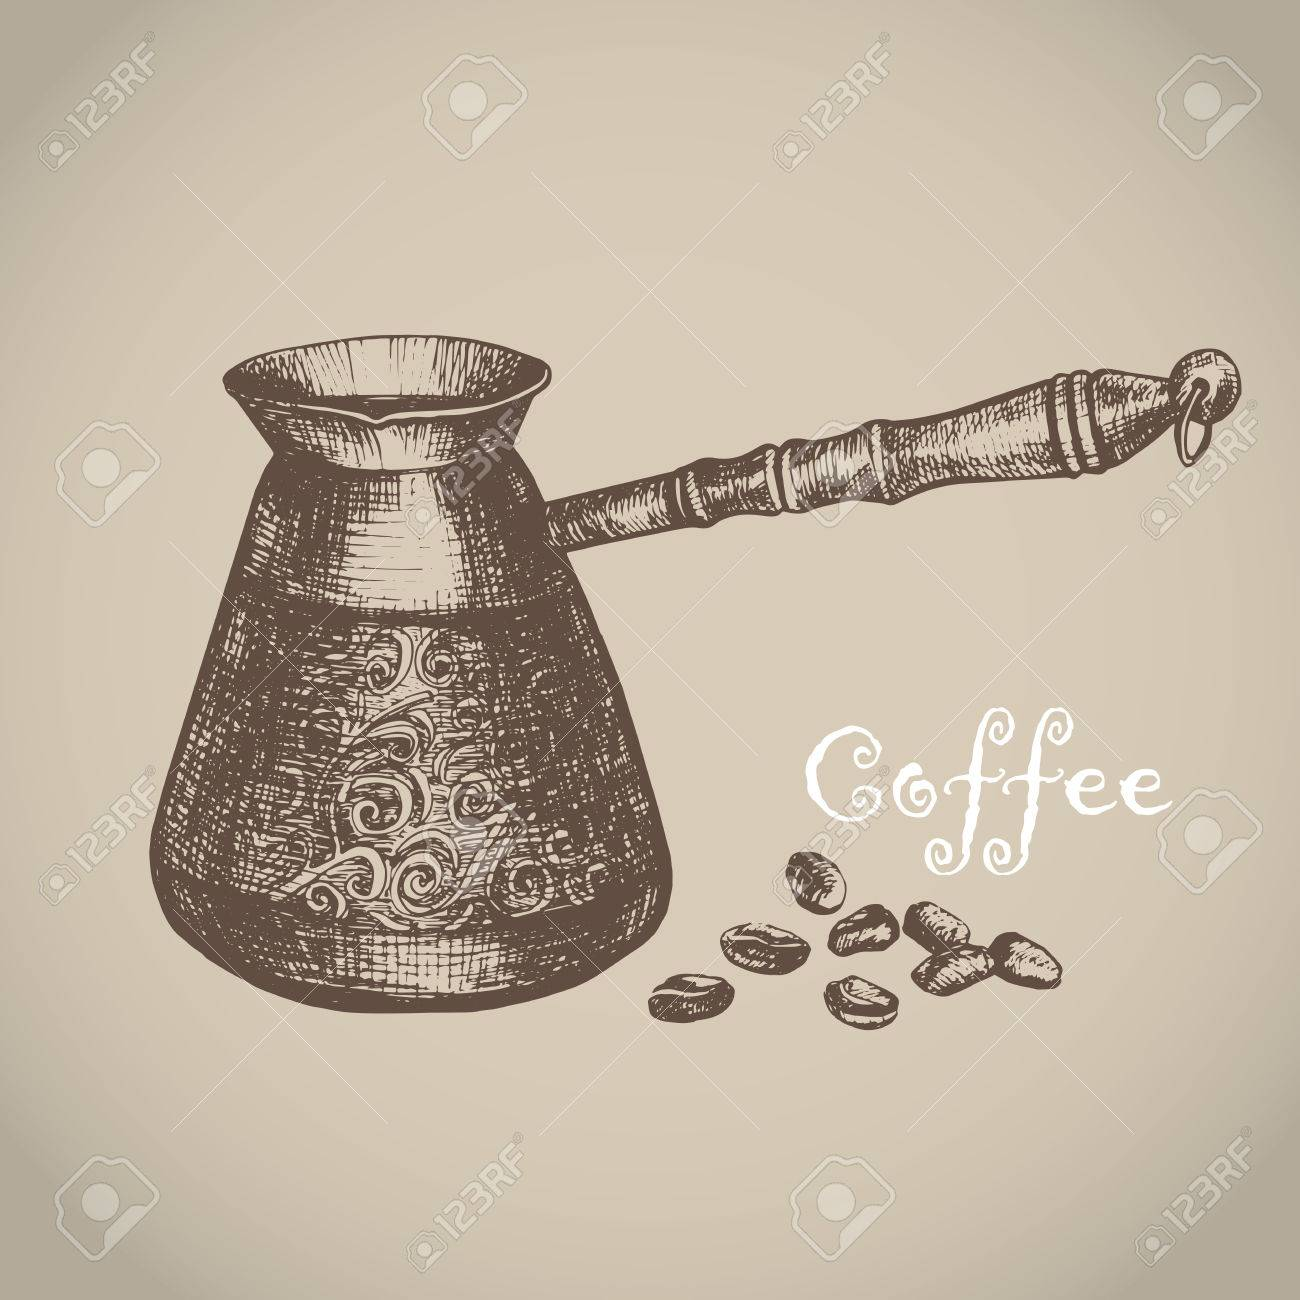 Vector illustration with sketch turkish coffee pot. Sketch of kitchen utensils in vintage style. Vector illustration. Hand drawn sketch. - 71188924